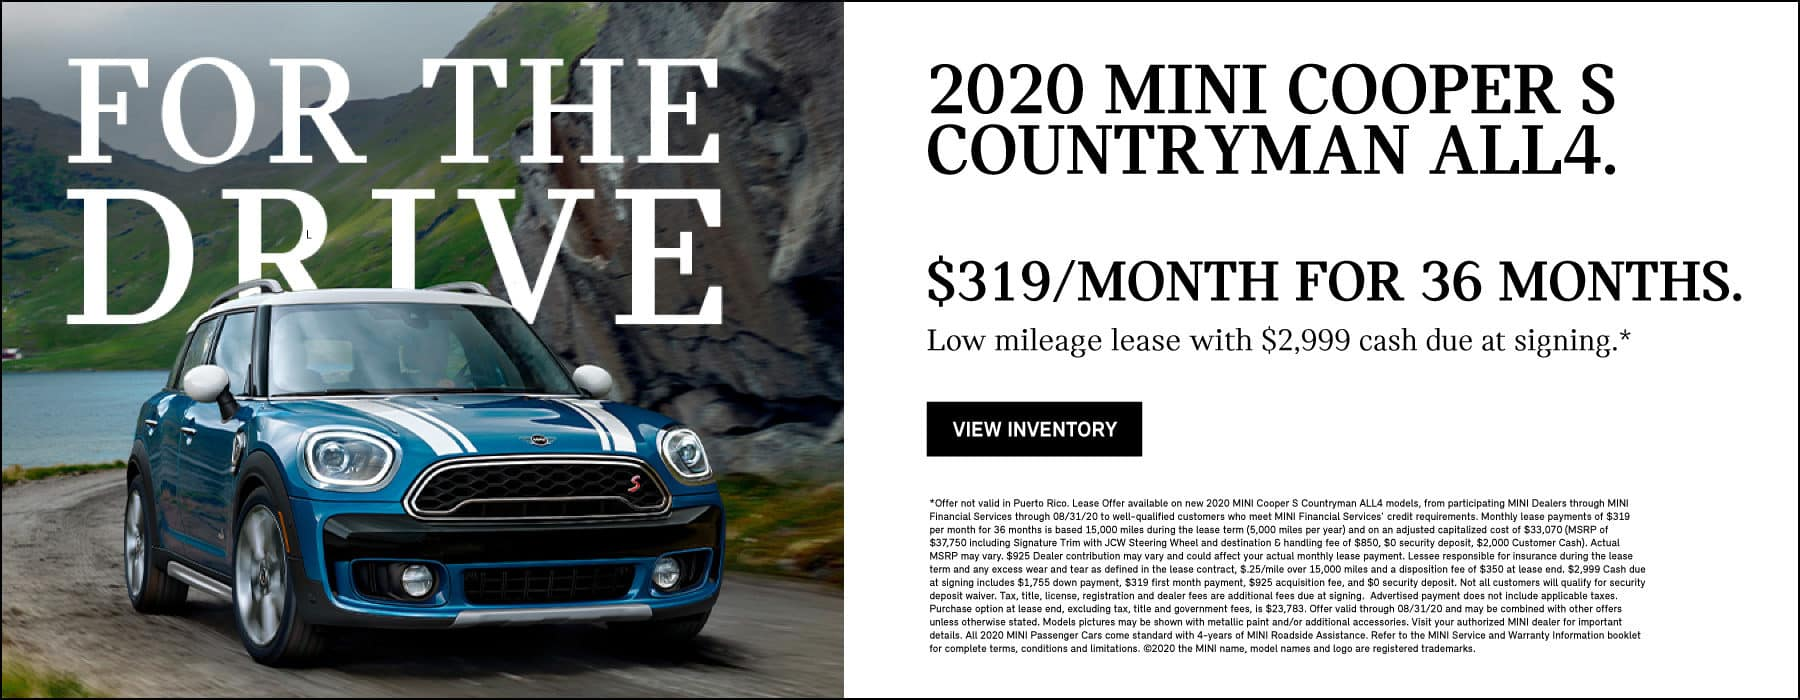 2020 MINI COOPER S COUNTRYMAN ALL4. $319/MONTH FOR 36 MONTHS